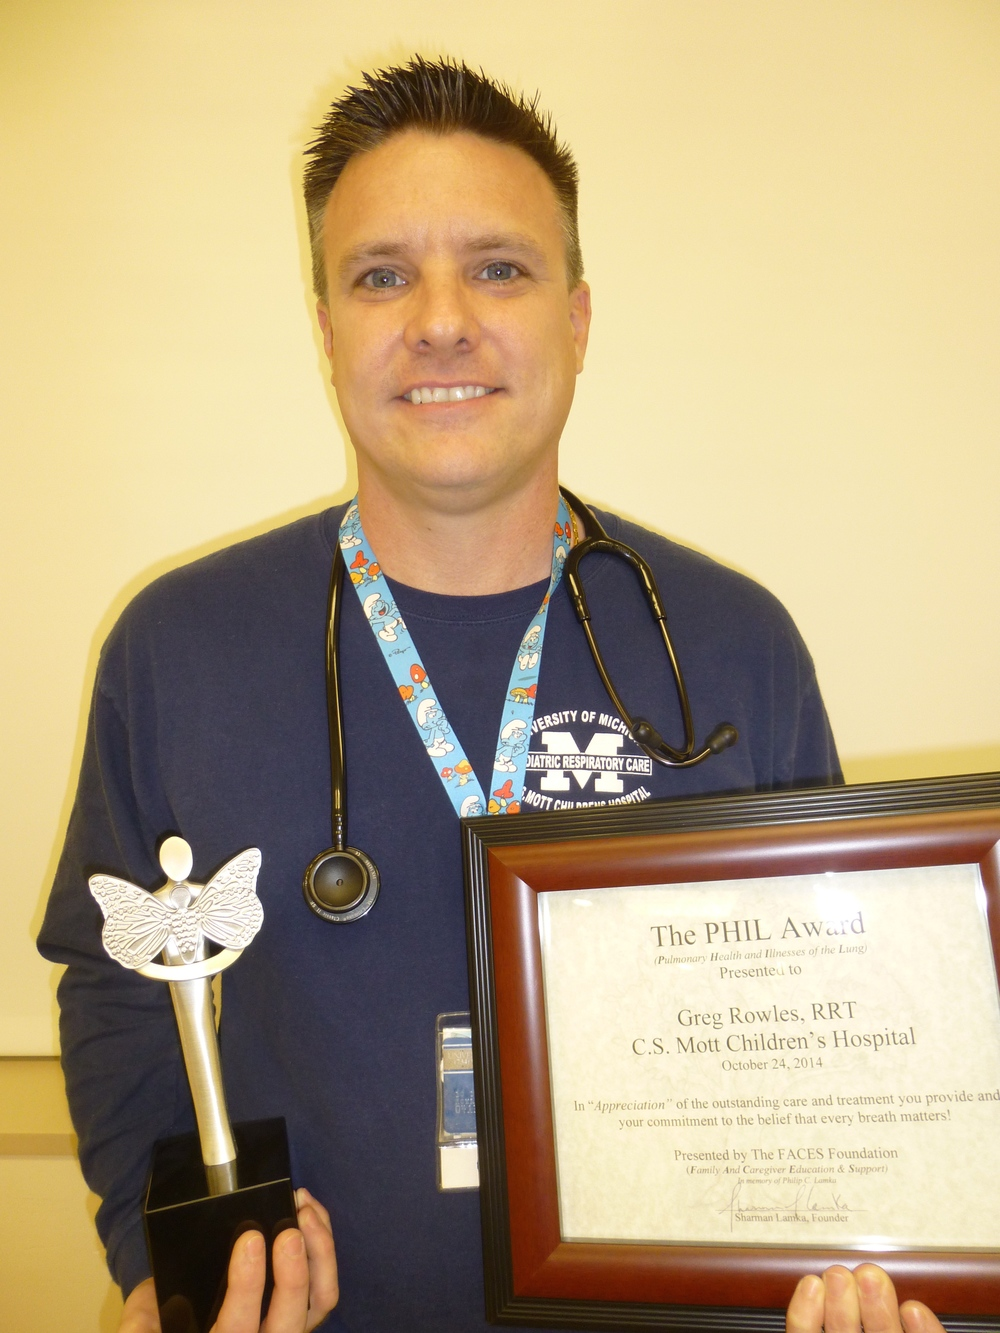 Greg Rowles, RRT - University of Michigan's C.S. Mott Children's Hospital - Ann Arbor, MI